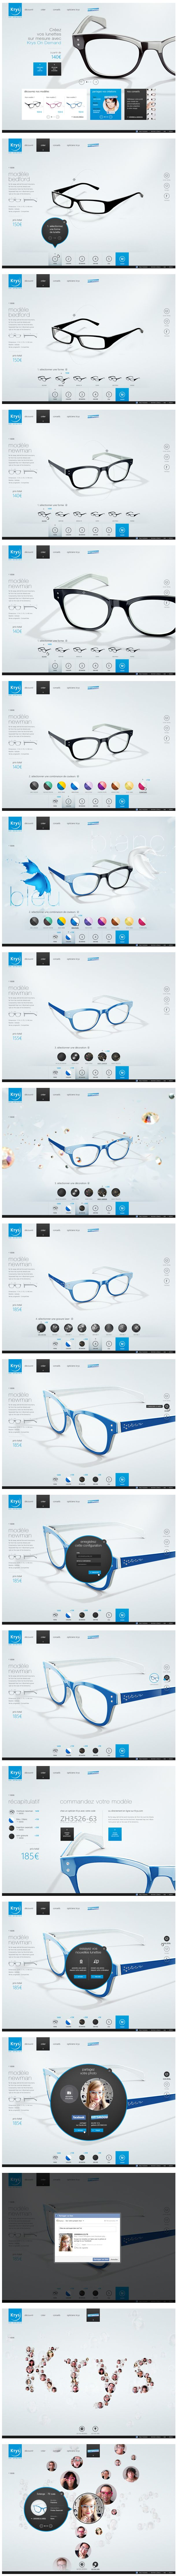 >> Customize UI <<  http://www.behance.net/gallery/Krys-Configurator/4446573